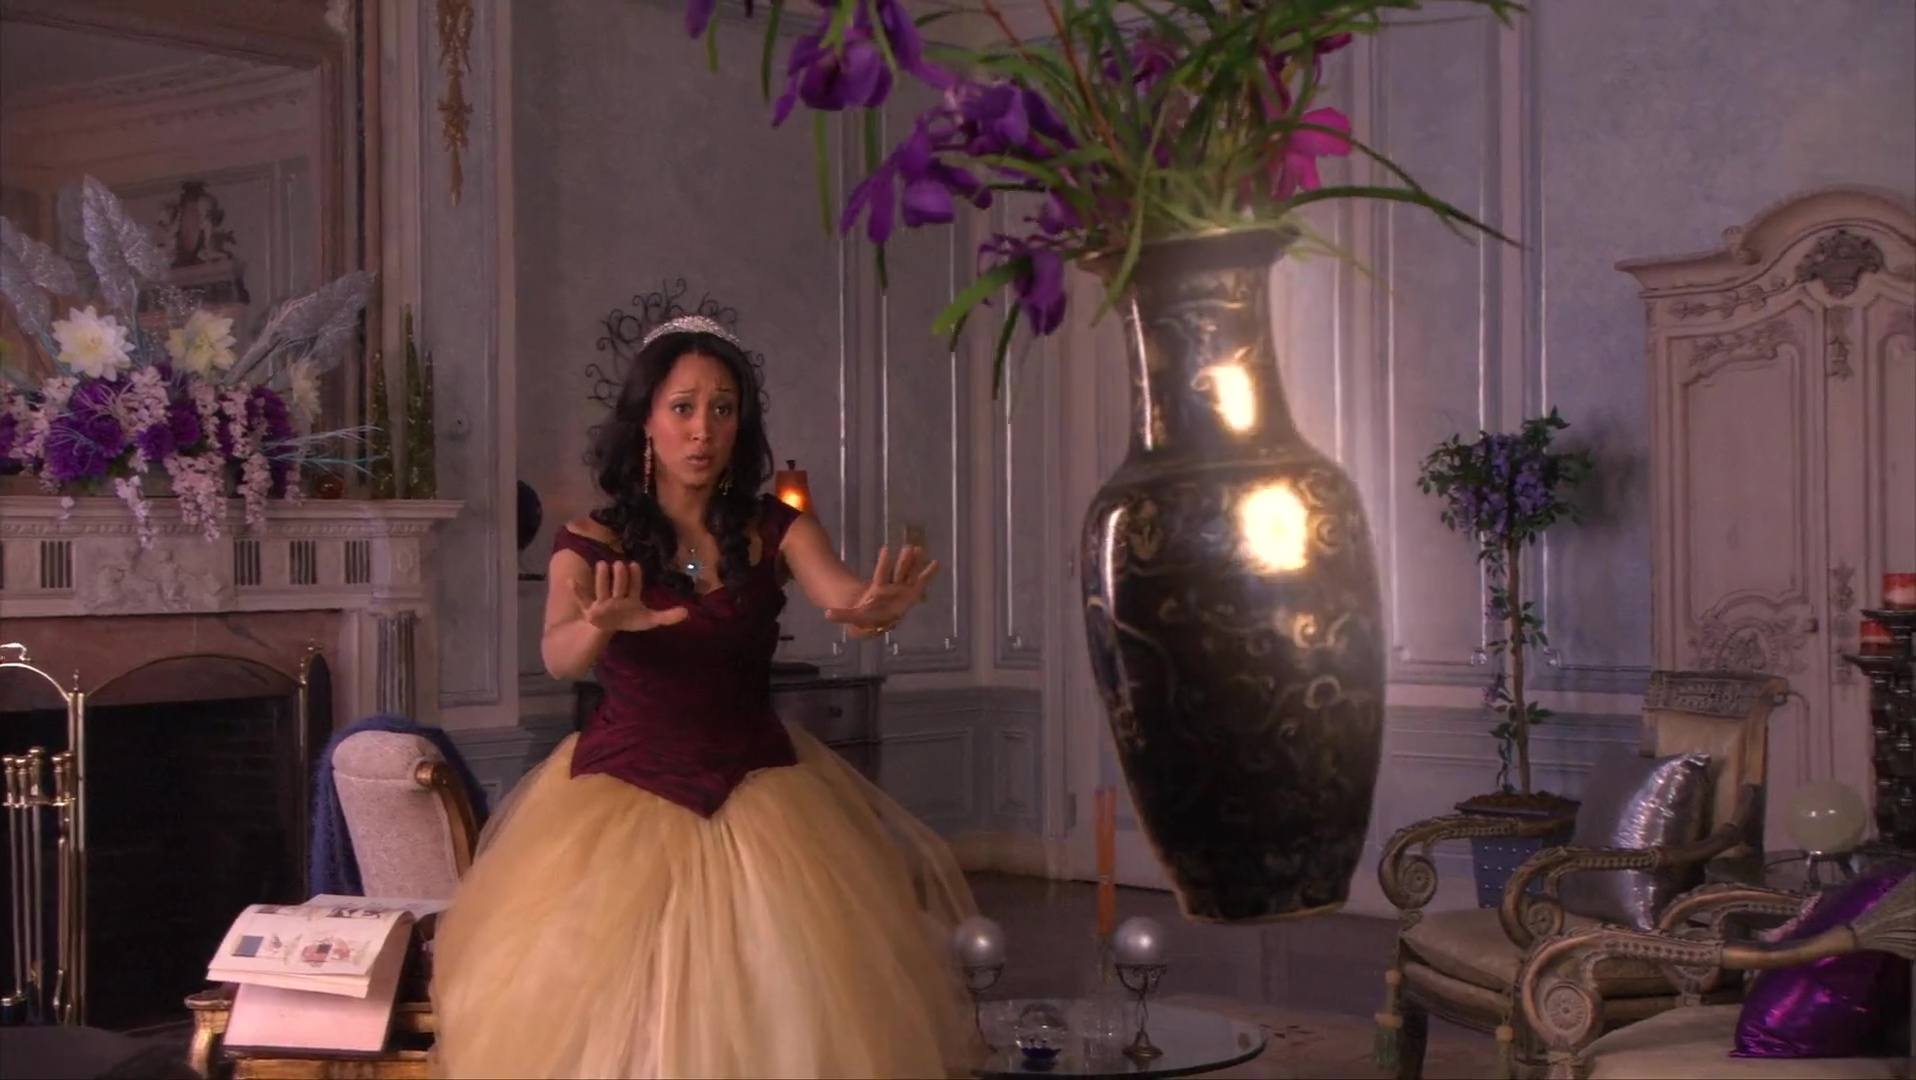 Image amours soeurcières 2 twitches too disney channel